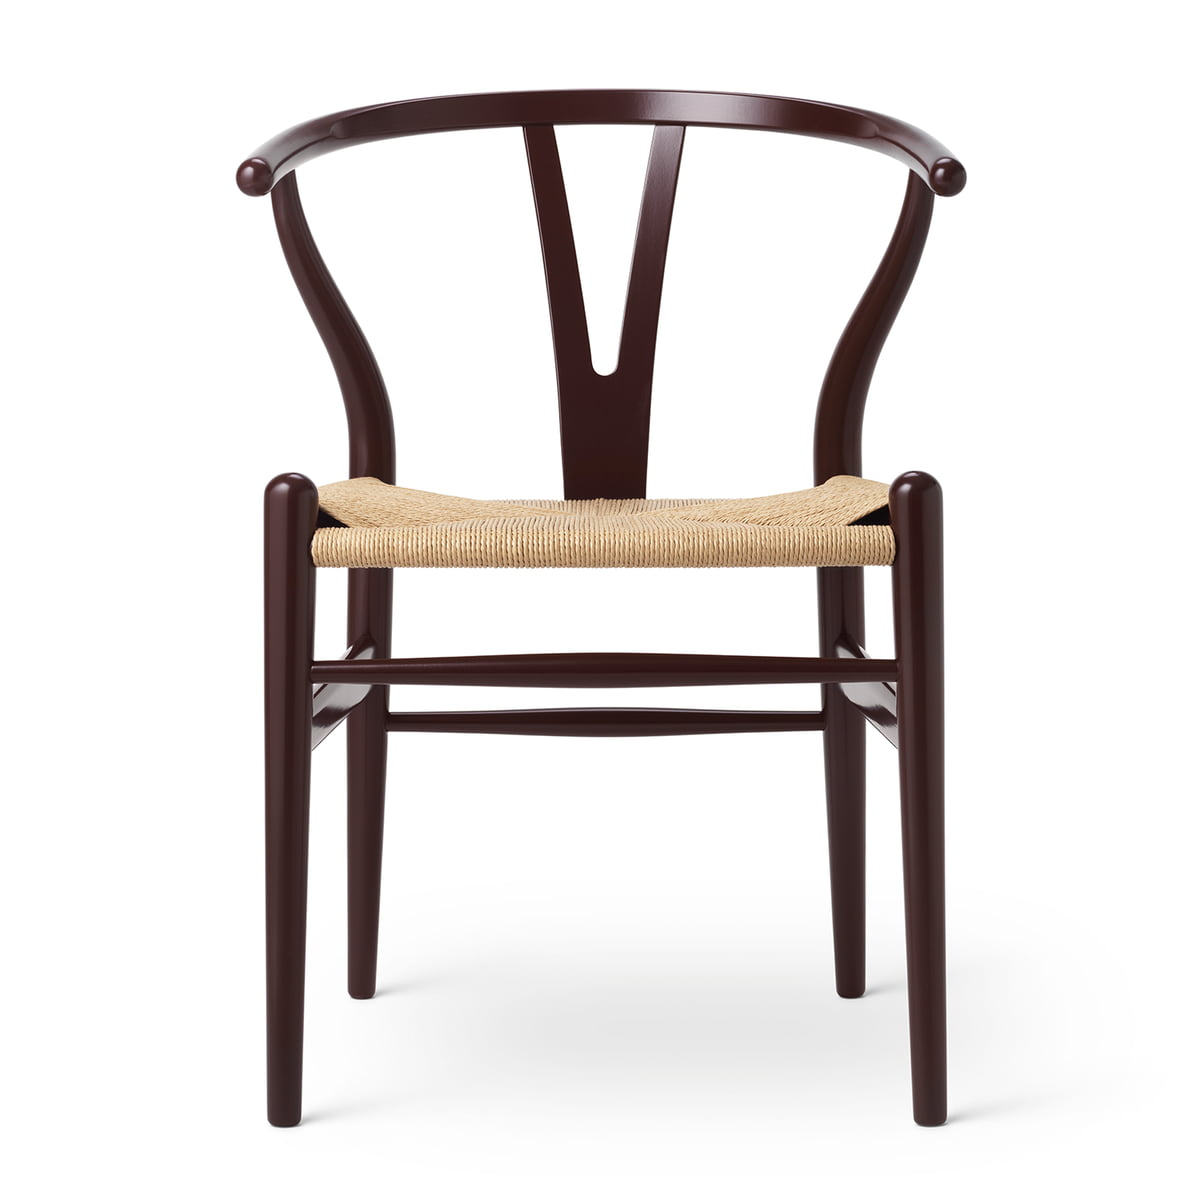 ch24 wishbone chair von carl hansen. Black Bedroom Furniture Sets. Home Design Ideas